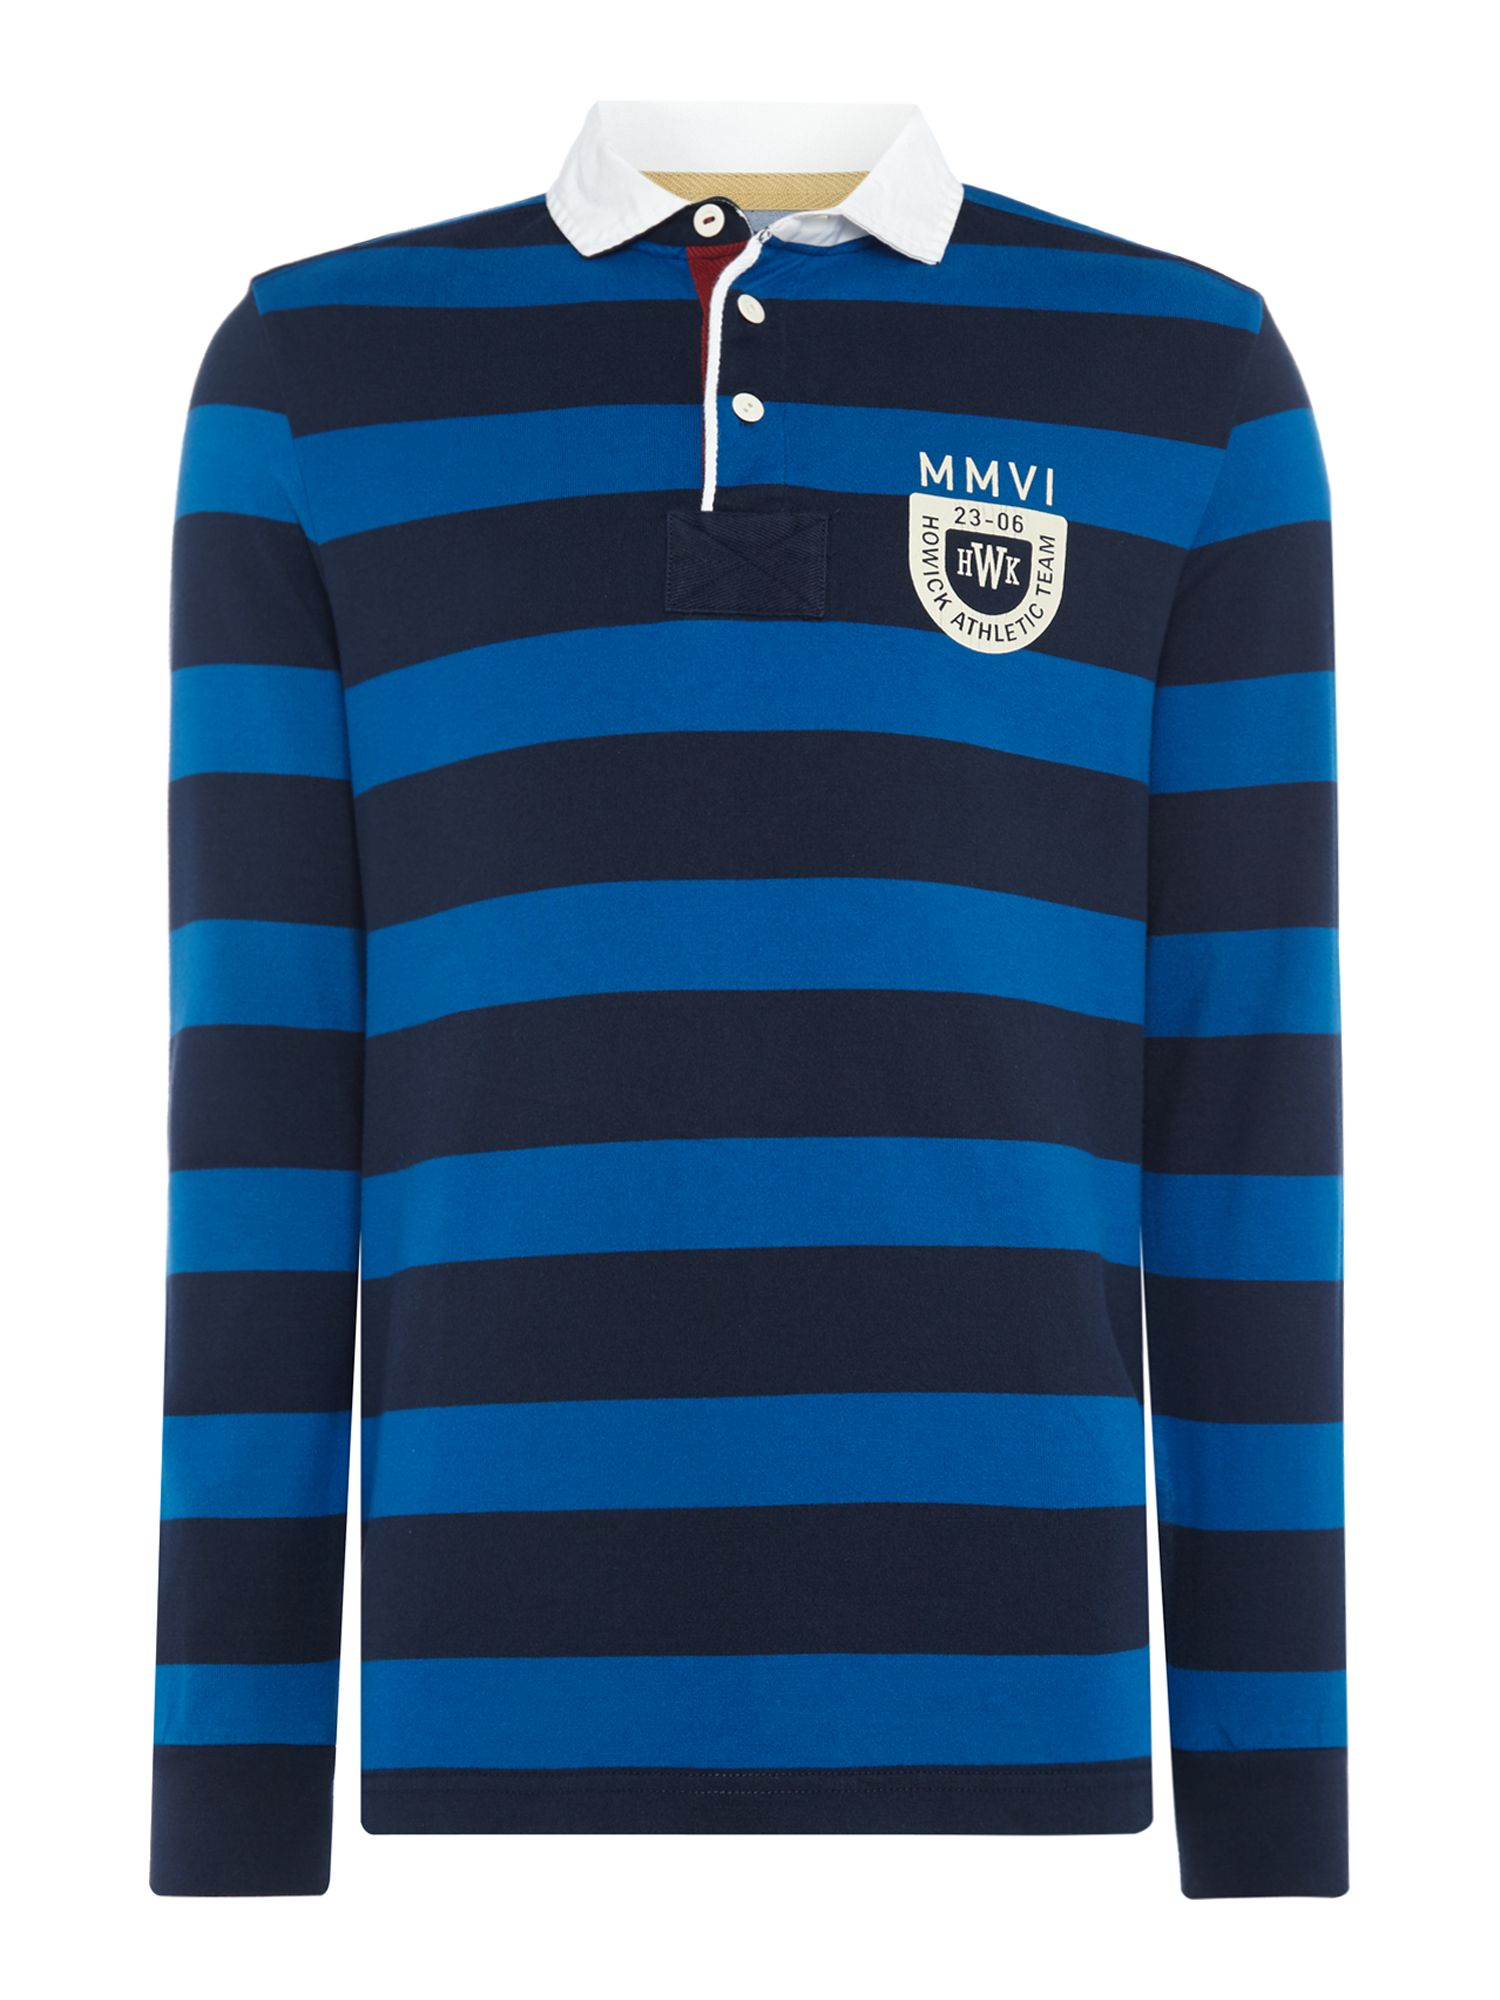 8c92b026a91 Men's Howick Montgomery Stripe Long Sleeve Rugby Shirt, Blue